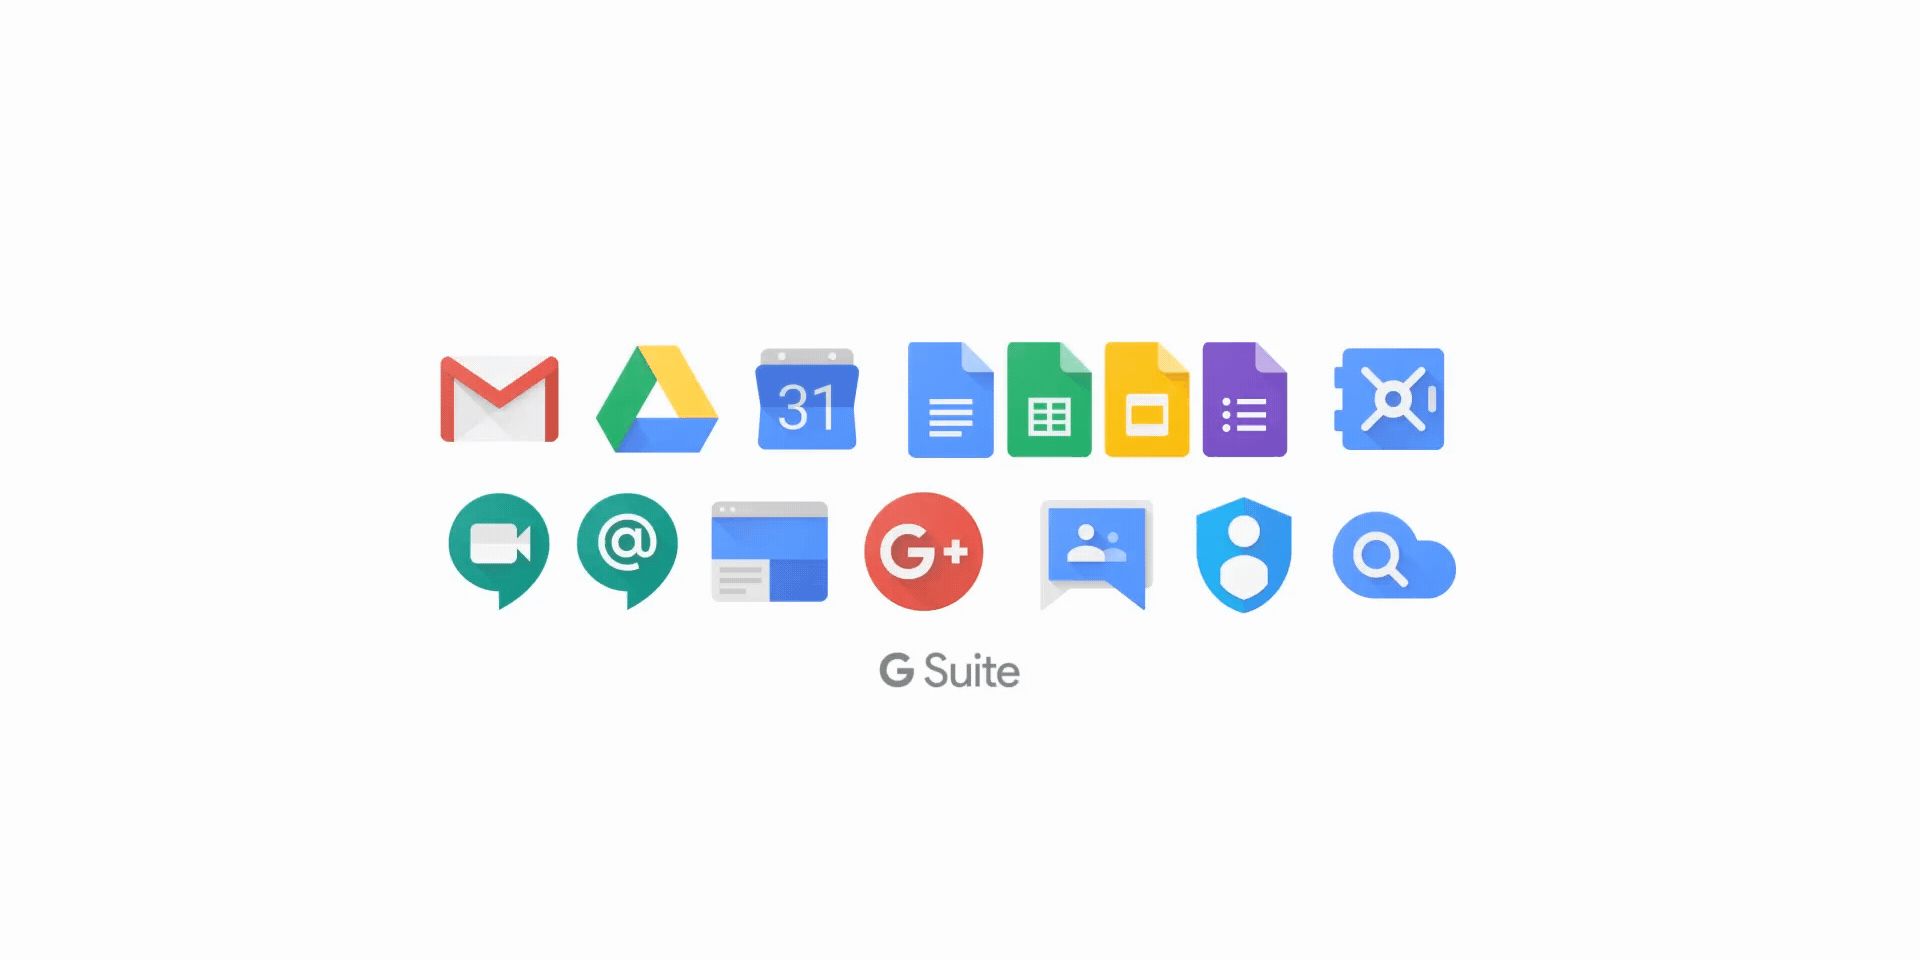 [Update: Live] Google adding prominent help button to web Gmail, Calendar, and Drive